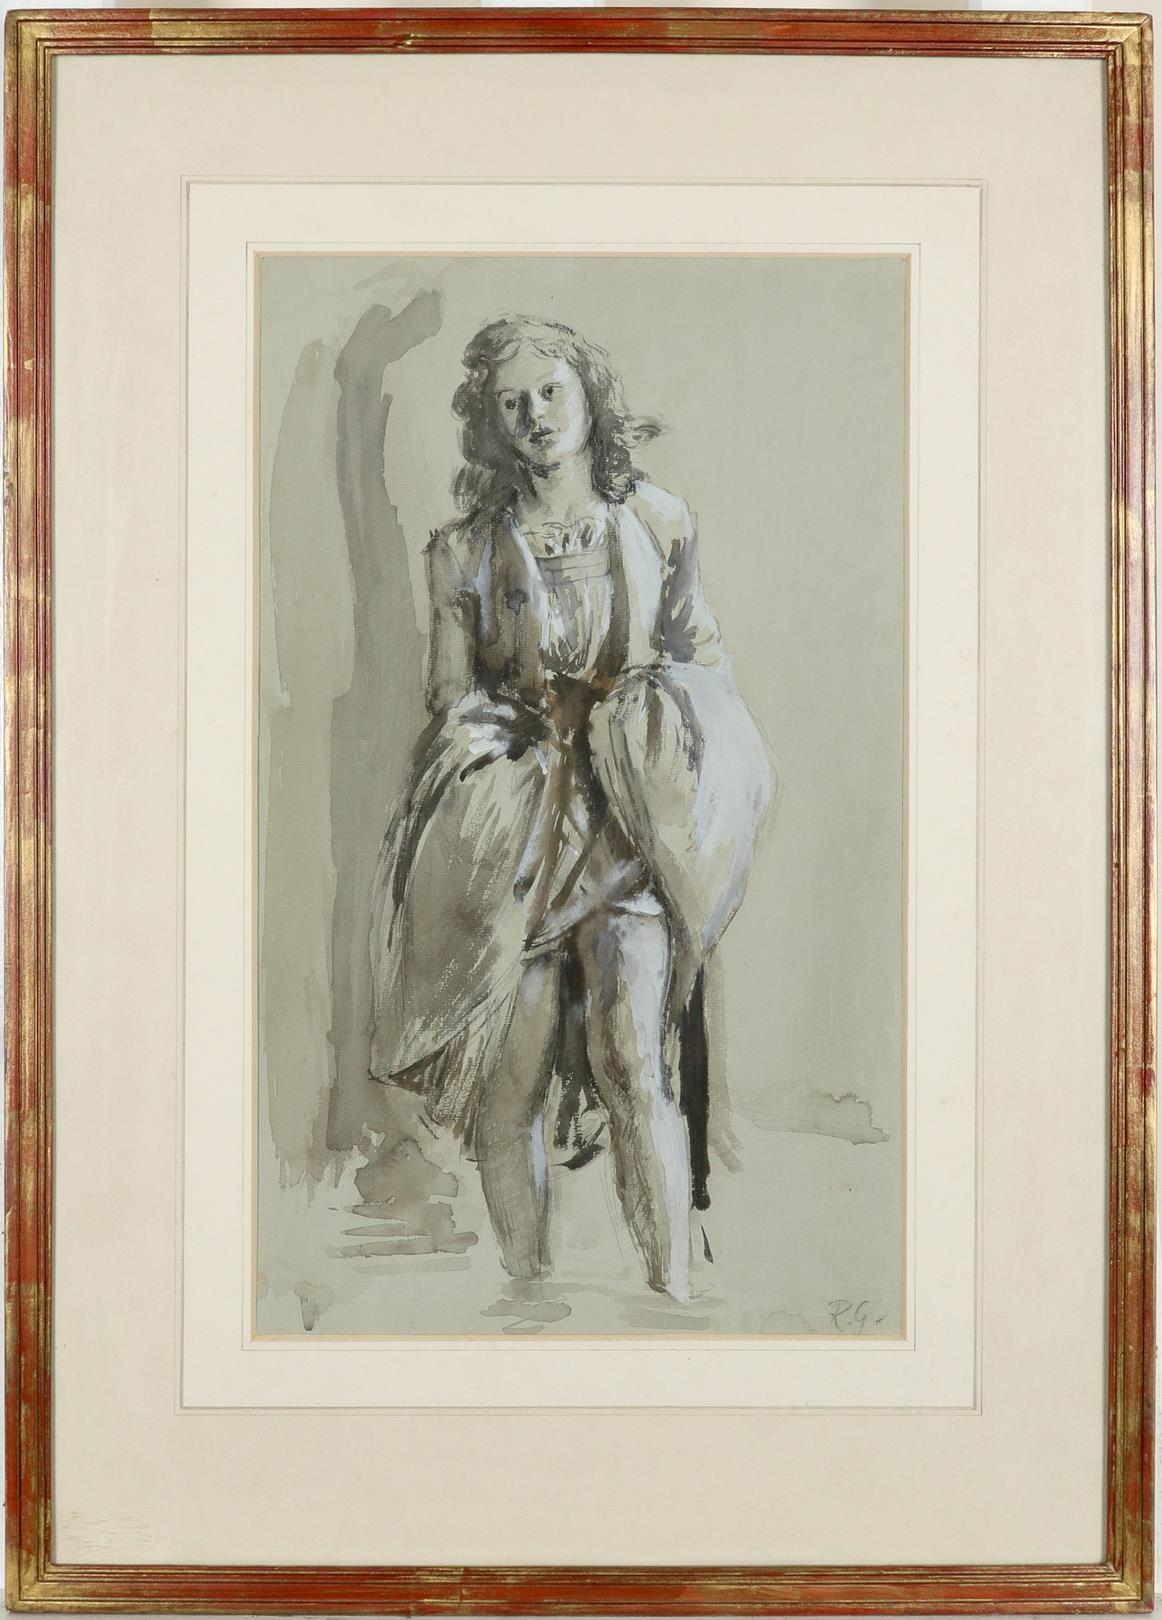 ‡Robin Guthrie (1902-1971) Study of a girl paddling Signed with initials R.G (lower right) - Image 2 of 3